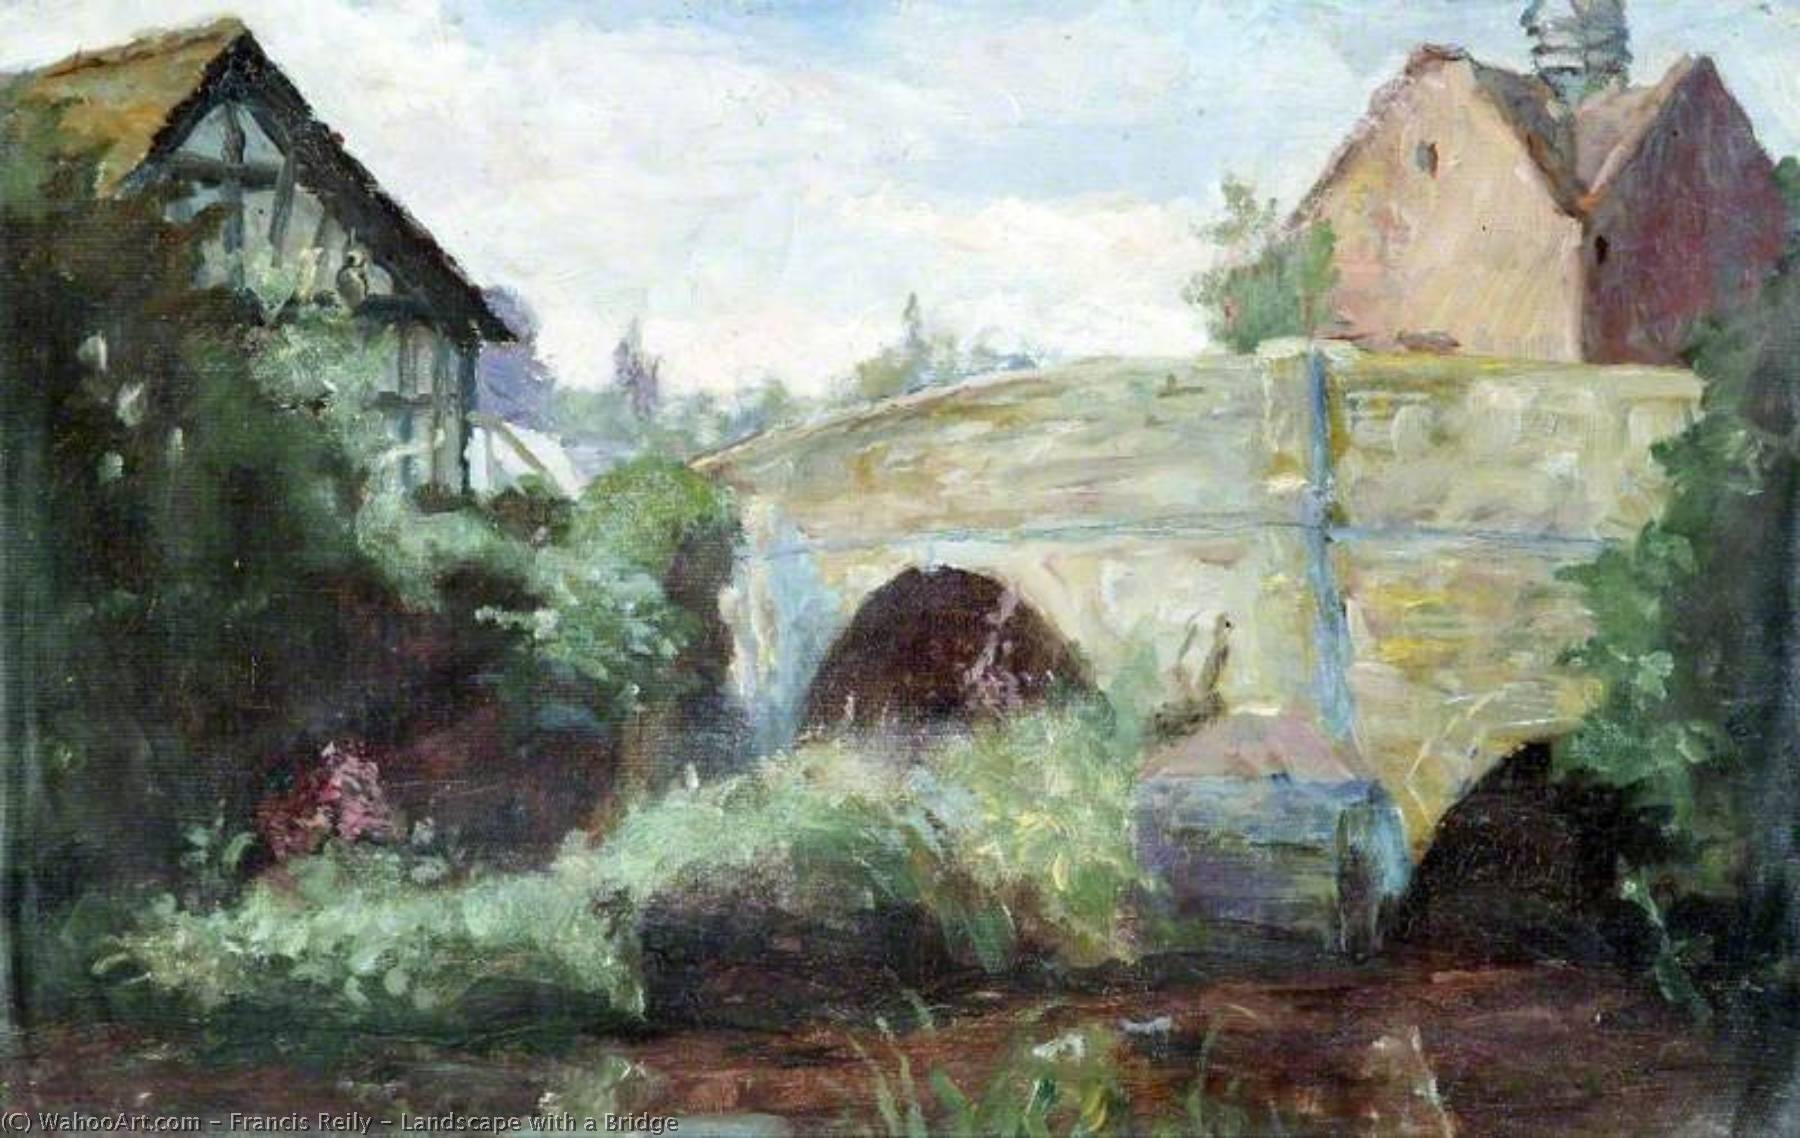 Landscape with a Bridge, Oil by Francis Reily